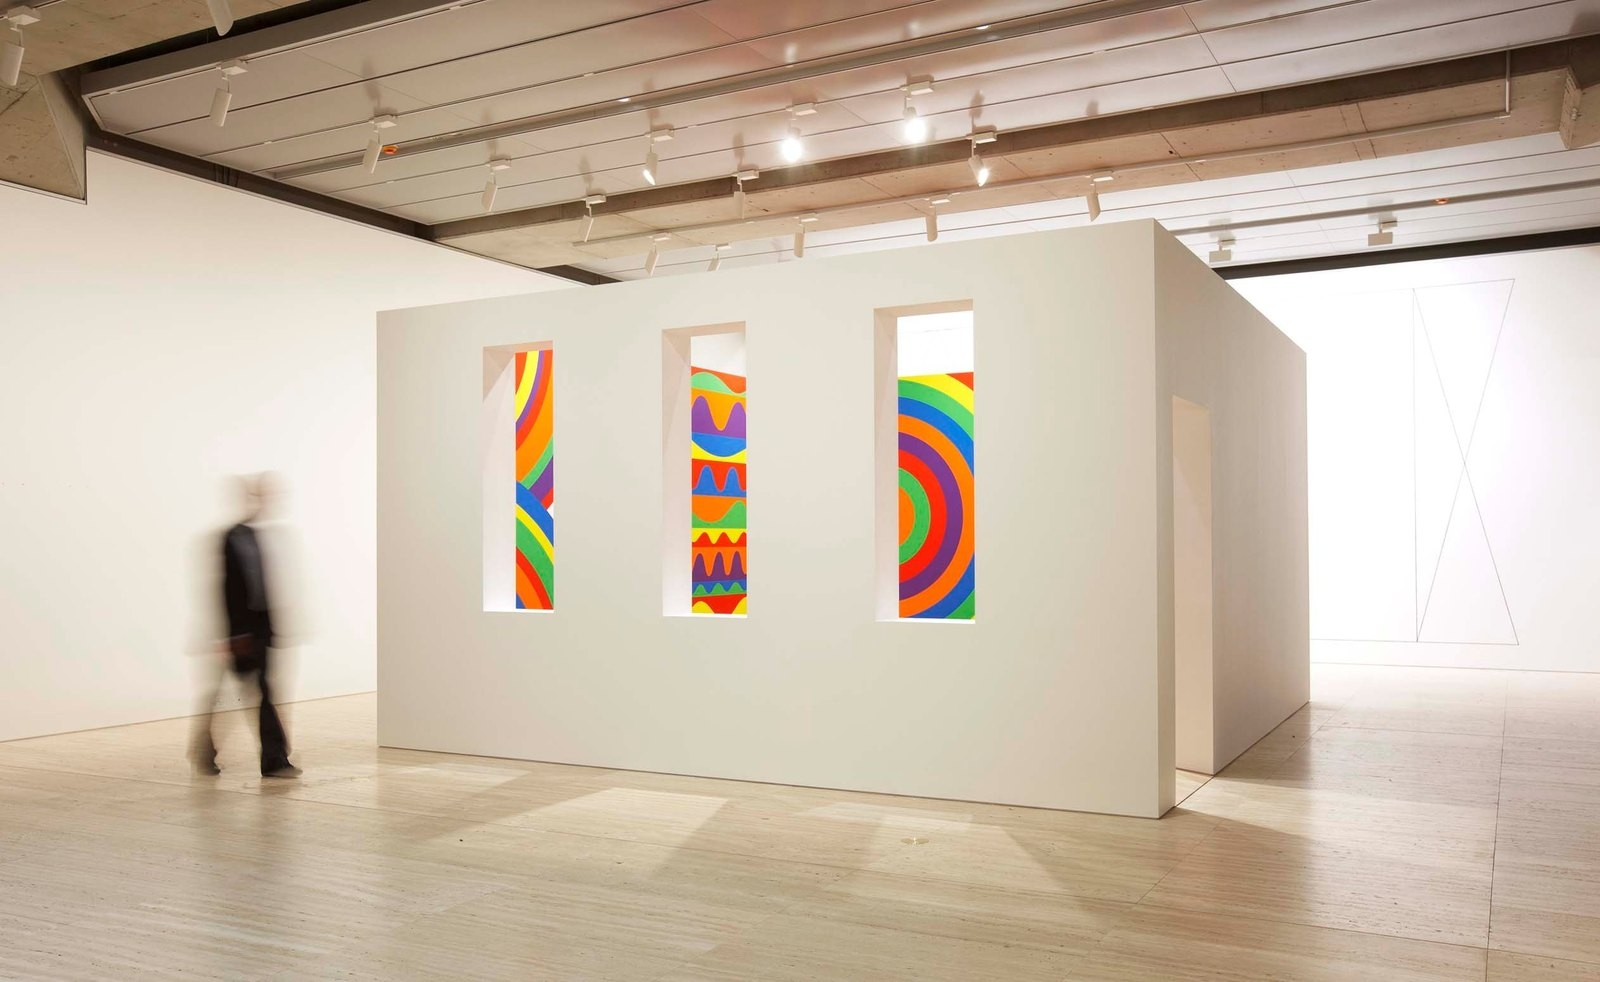 The new John Kaldor Family Gallery with Sol LeWitt's Wall drawing #1091 image